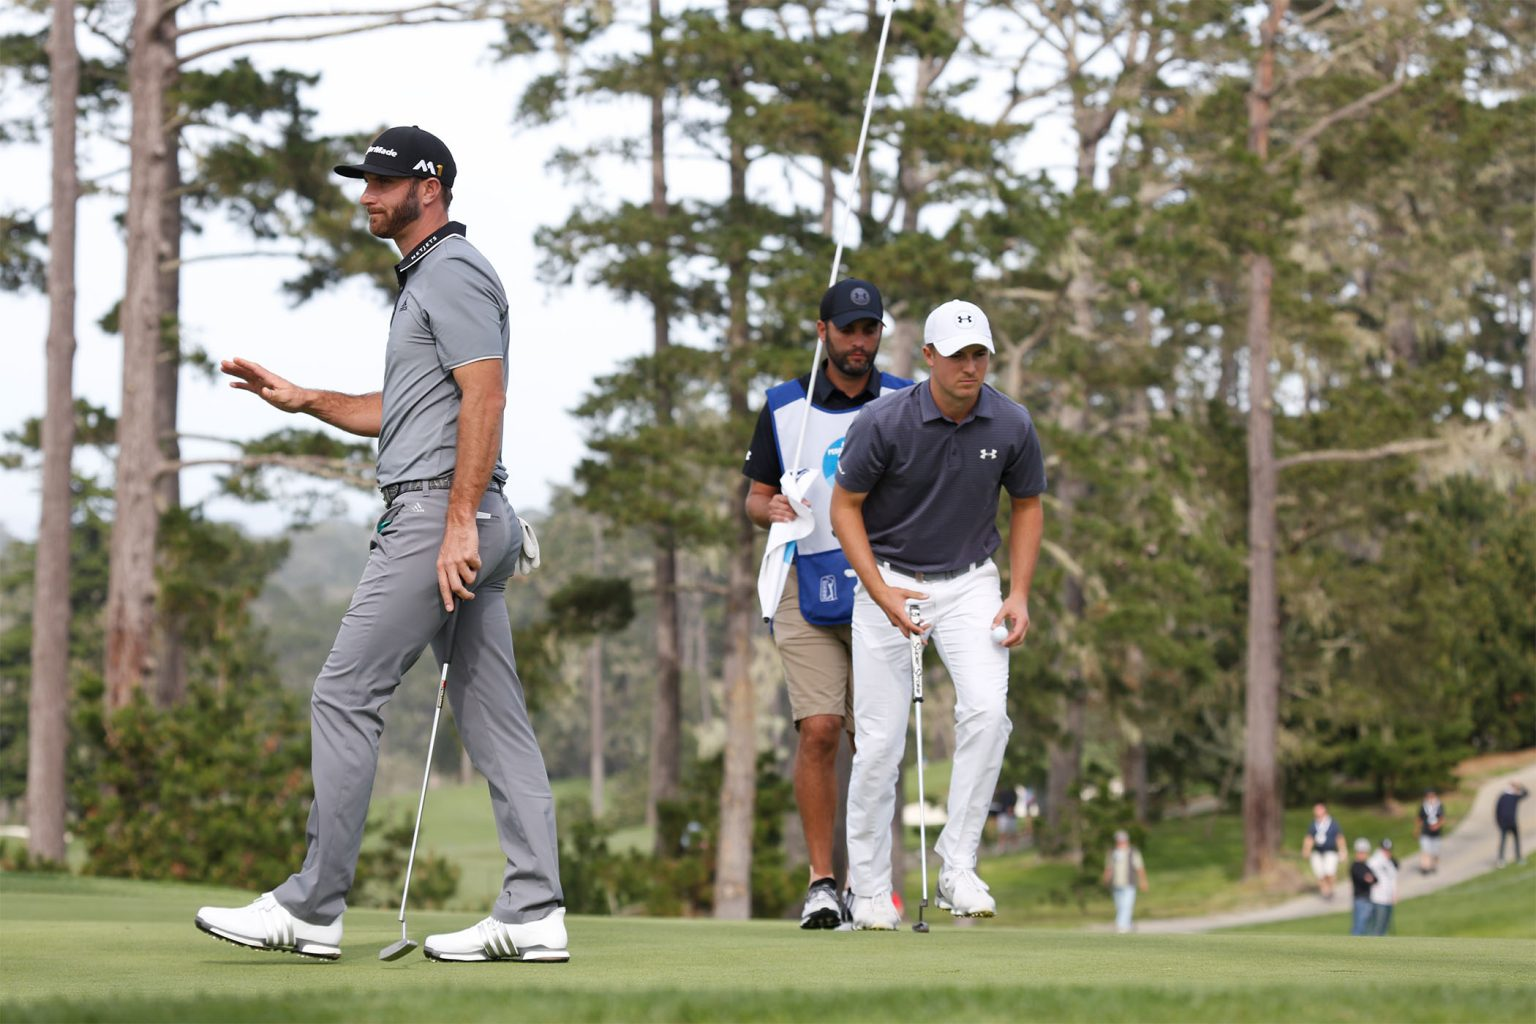 Golfers at the AT&T Pebble Beach Pro Am